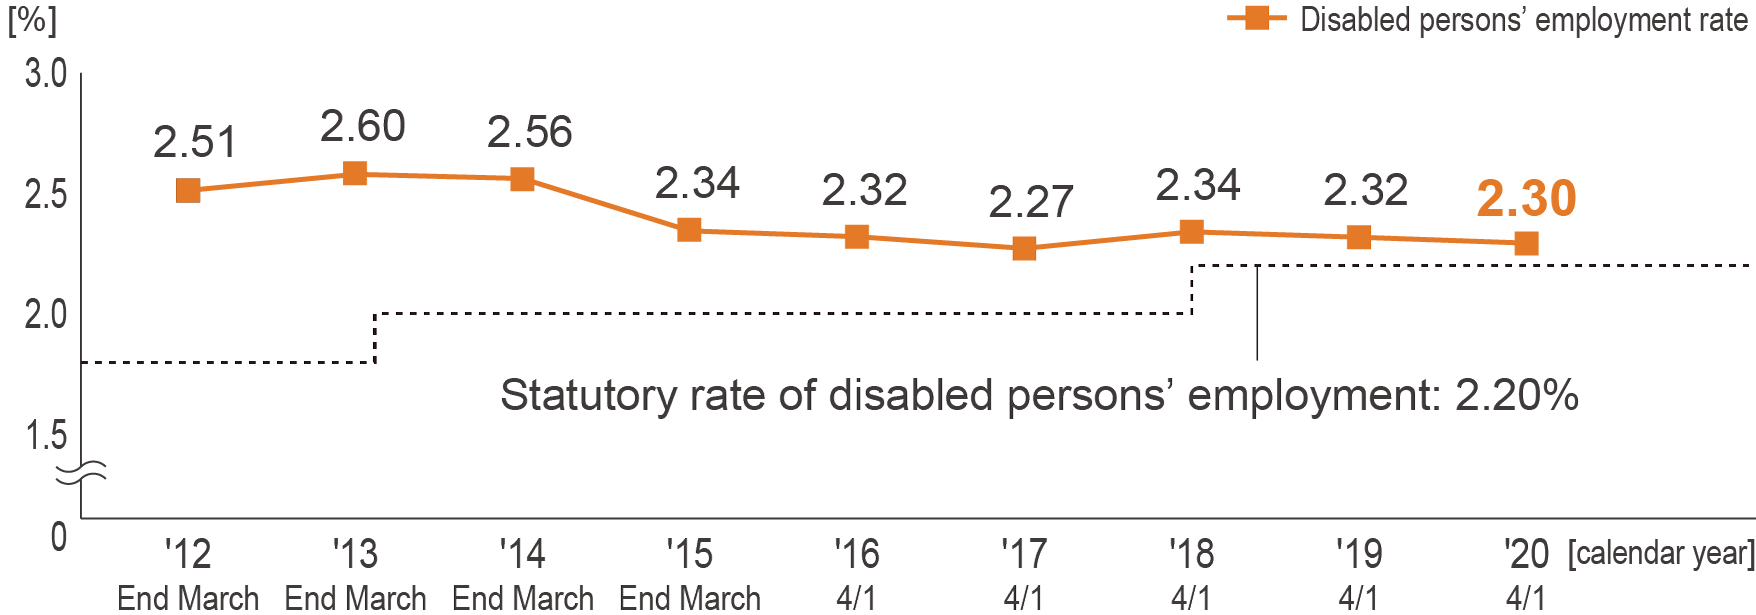 Disabled persons' employment rate